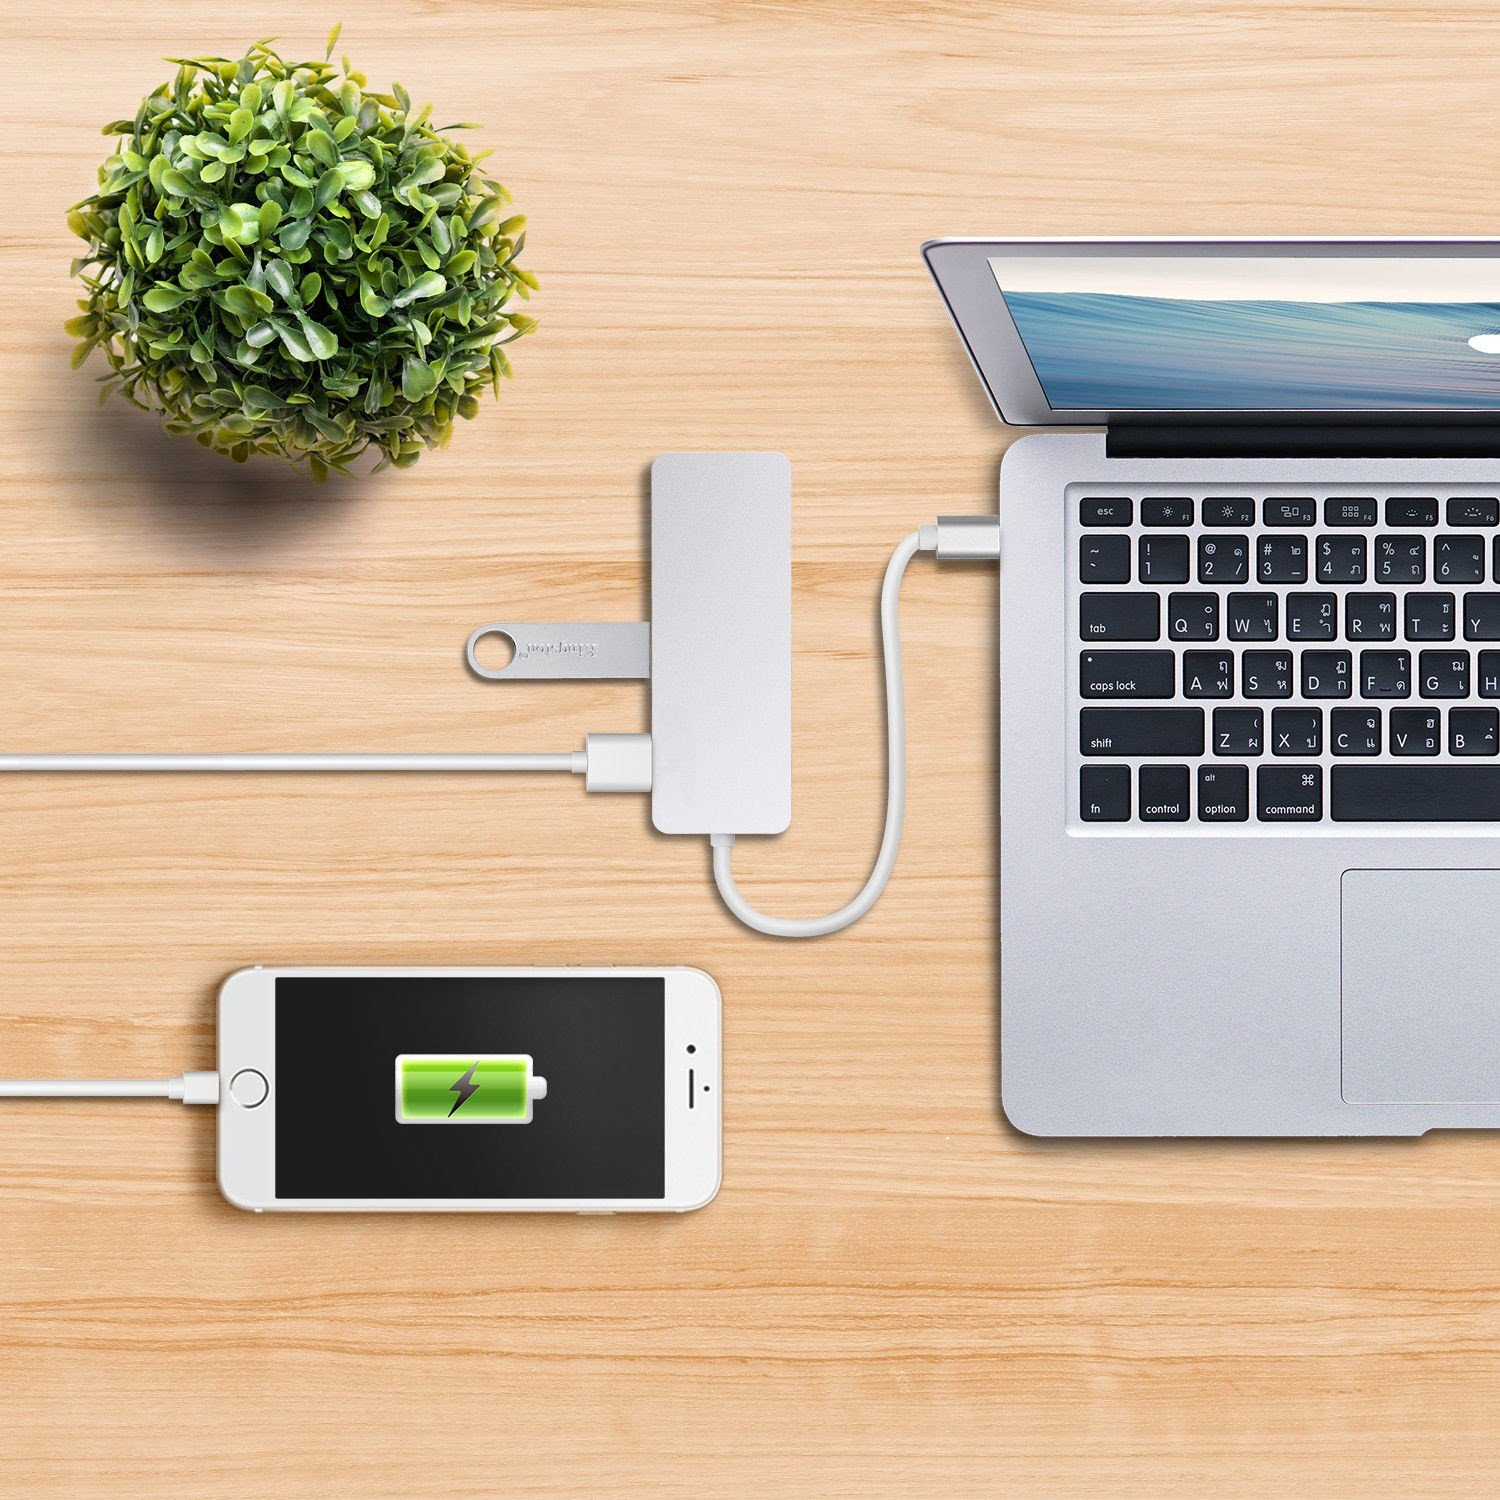 Hulorry Aluminum USB Type-C 5in1 Hub Adapter, 5 USB 3.0 SD/Micro Card Reader for Macbook For Macbook and Other USB Type C Laptop